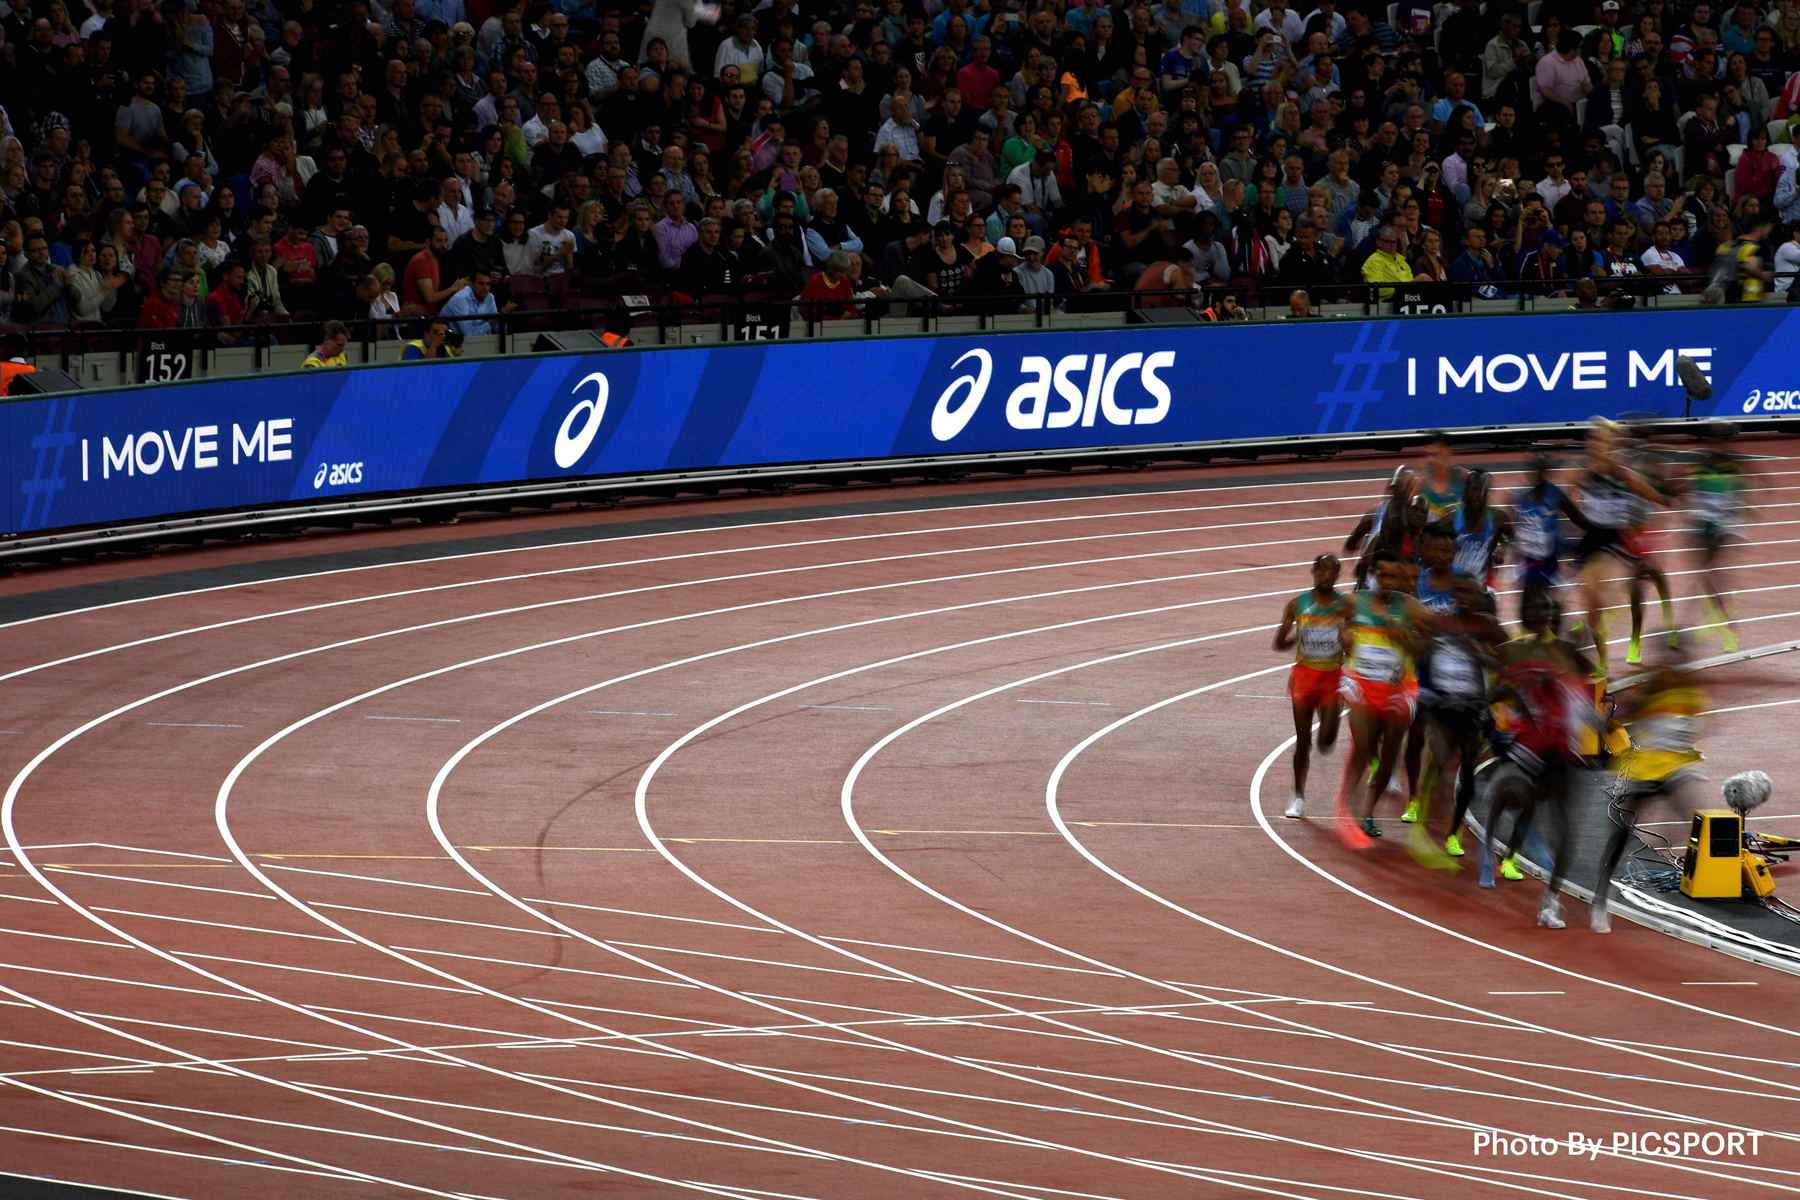 Runners at the IAAF World Championships (ASICS)